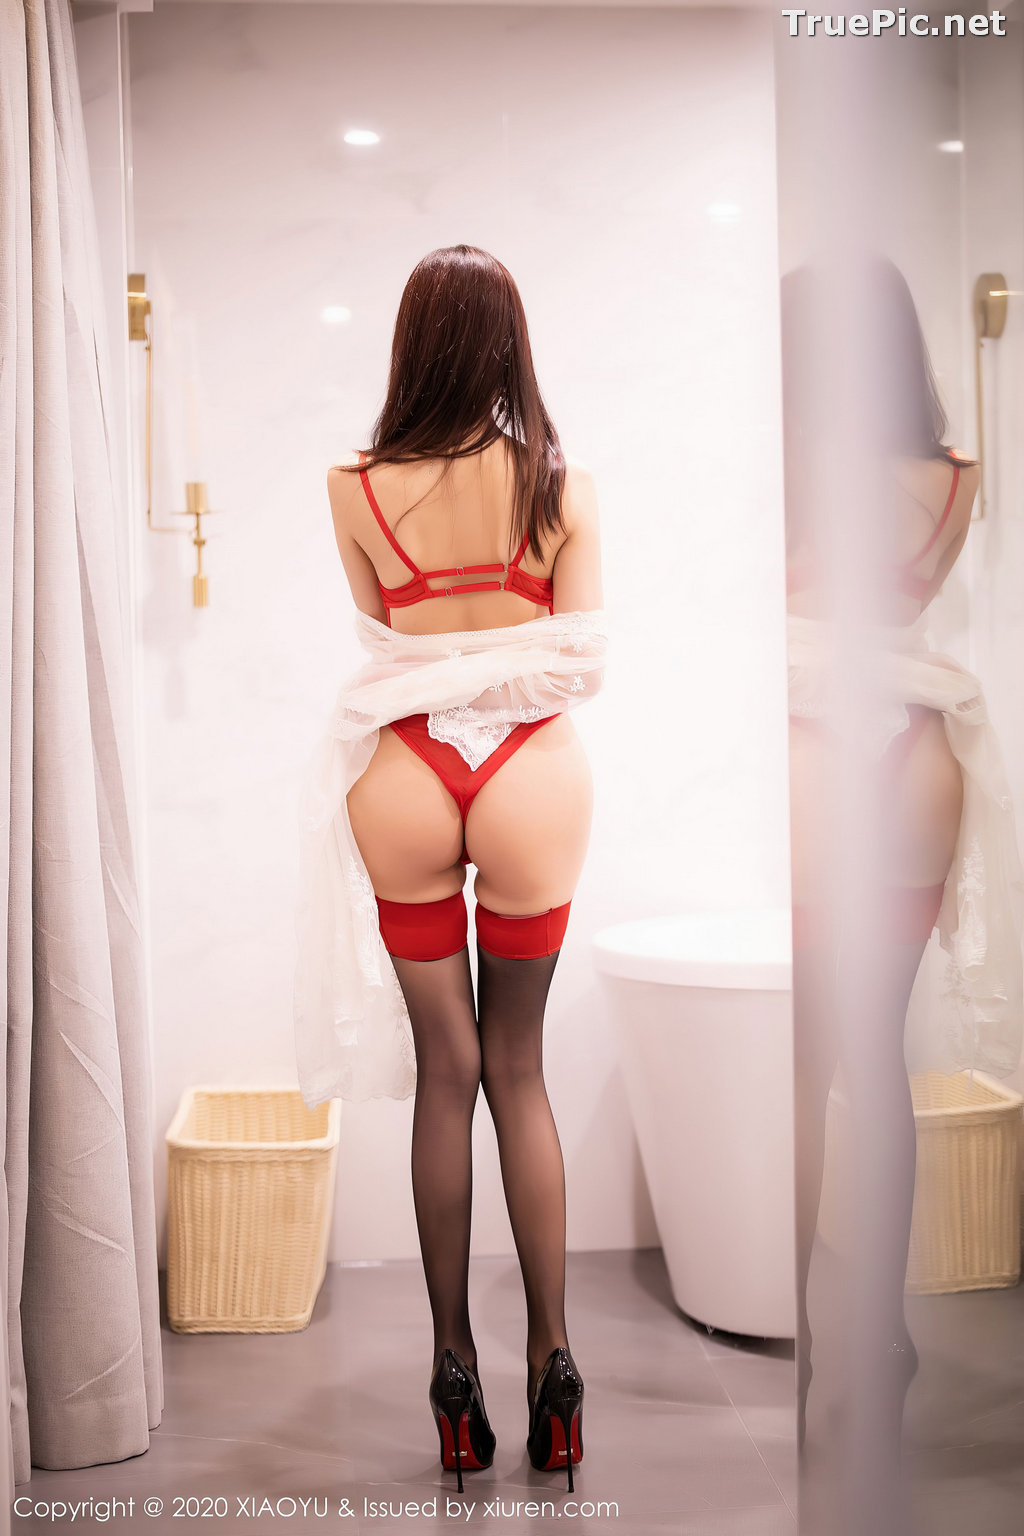 Image XiaoYu Vol.413 - Chinese Model - Yang Chen Chen (杨晨晨sugar)- Red Crystal-clear Lingerie - TruePic.net - Picture-20